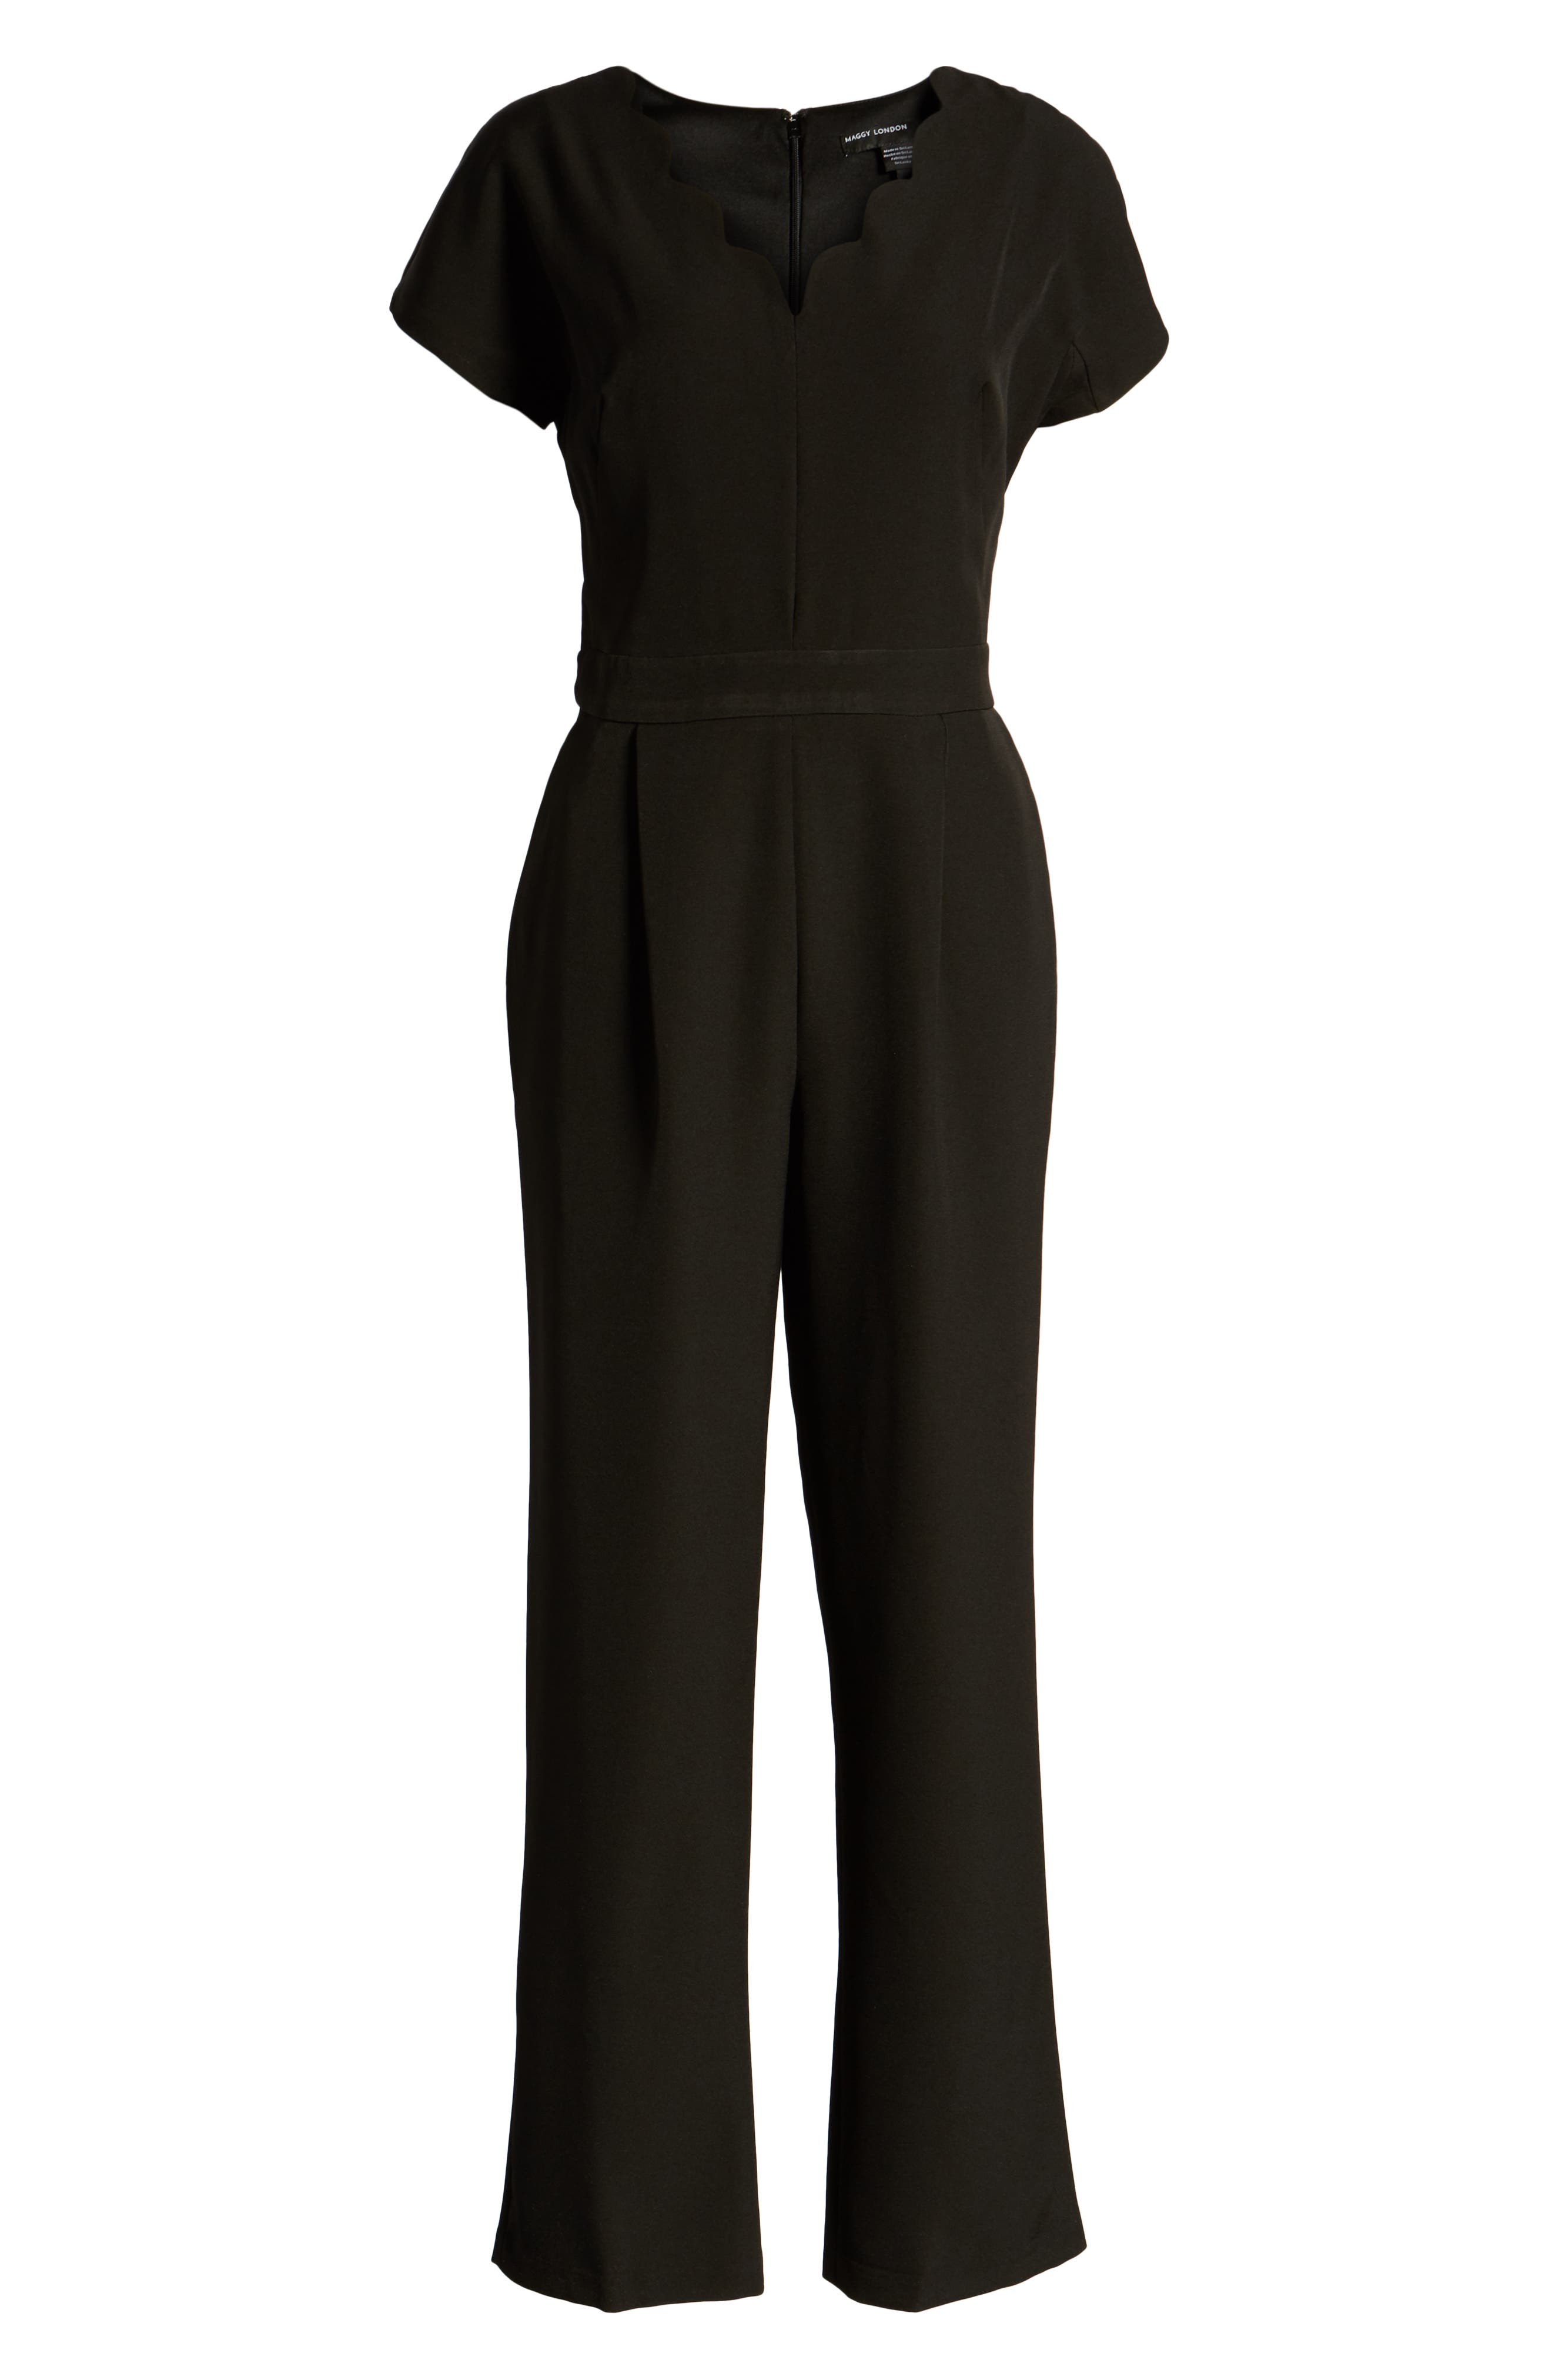 MAGGY LONDON, Crepe Jumpsuit, Alternate thumbnail 4, color, 001